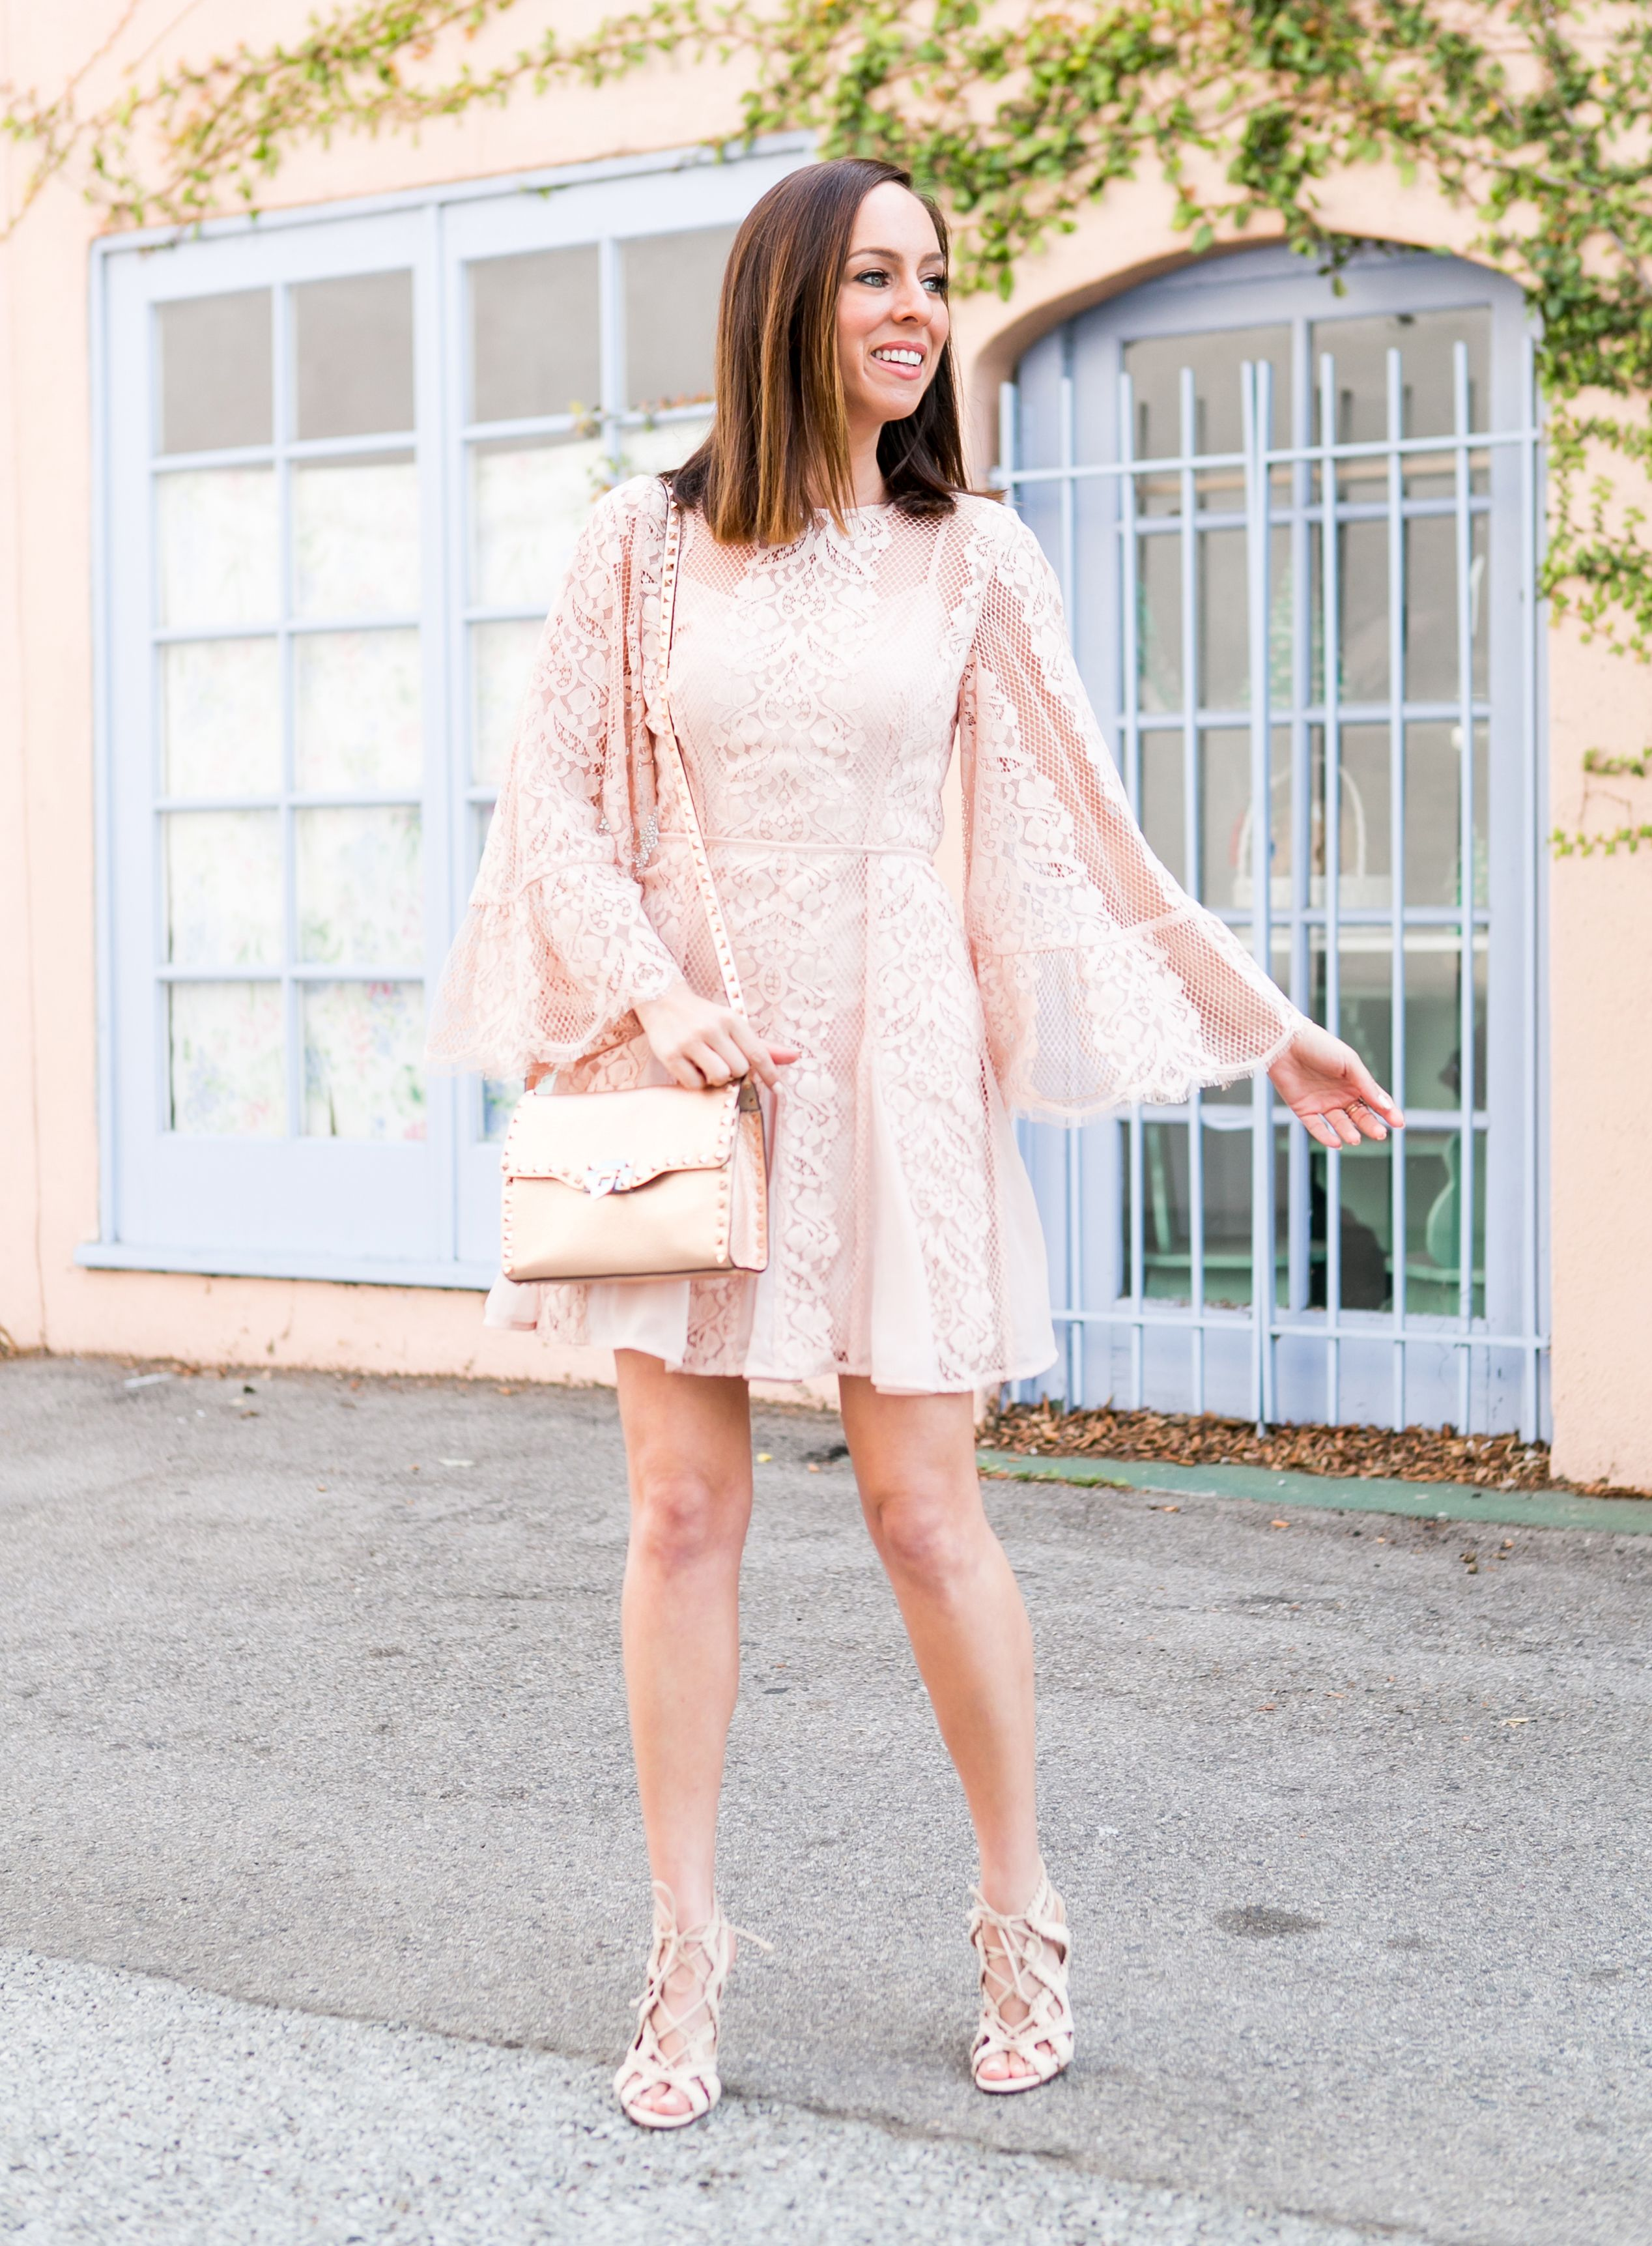 7ced2b365ae0 Sydne Style shows what to wear to graduation in pink lace dress #pink  #blush #lace #bellsleeves #dresses #valentino